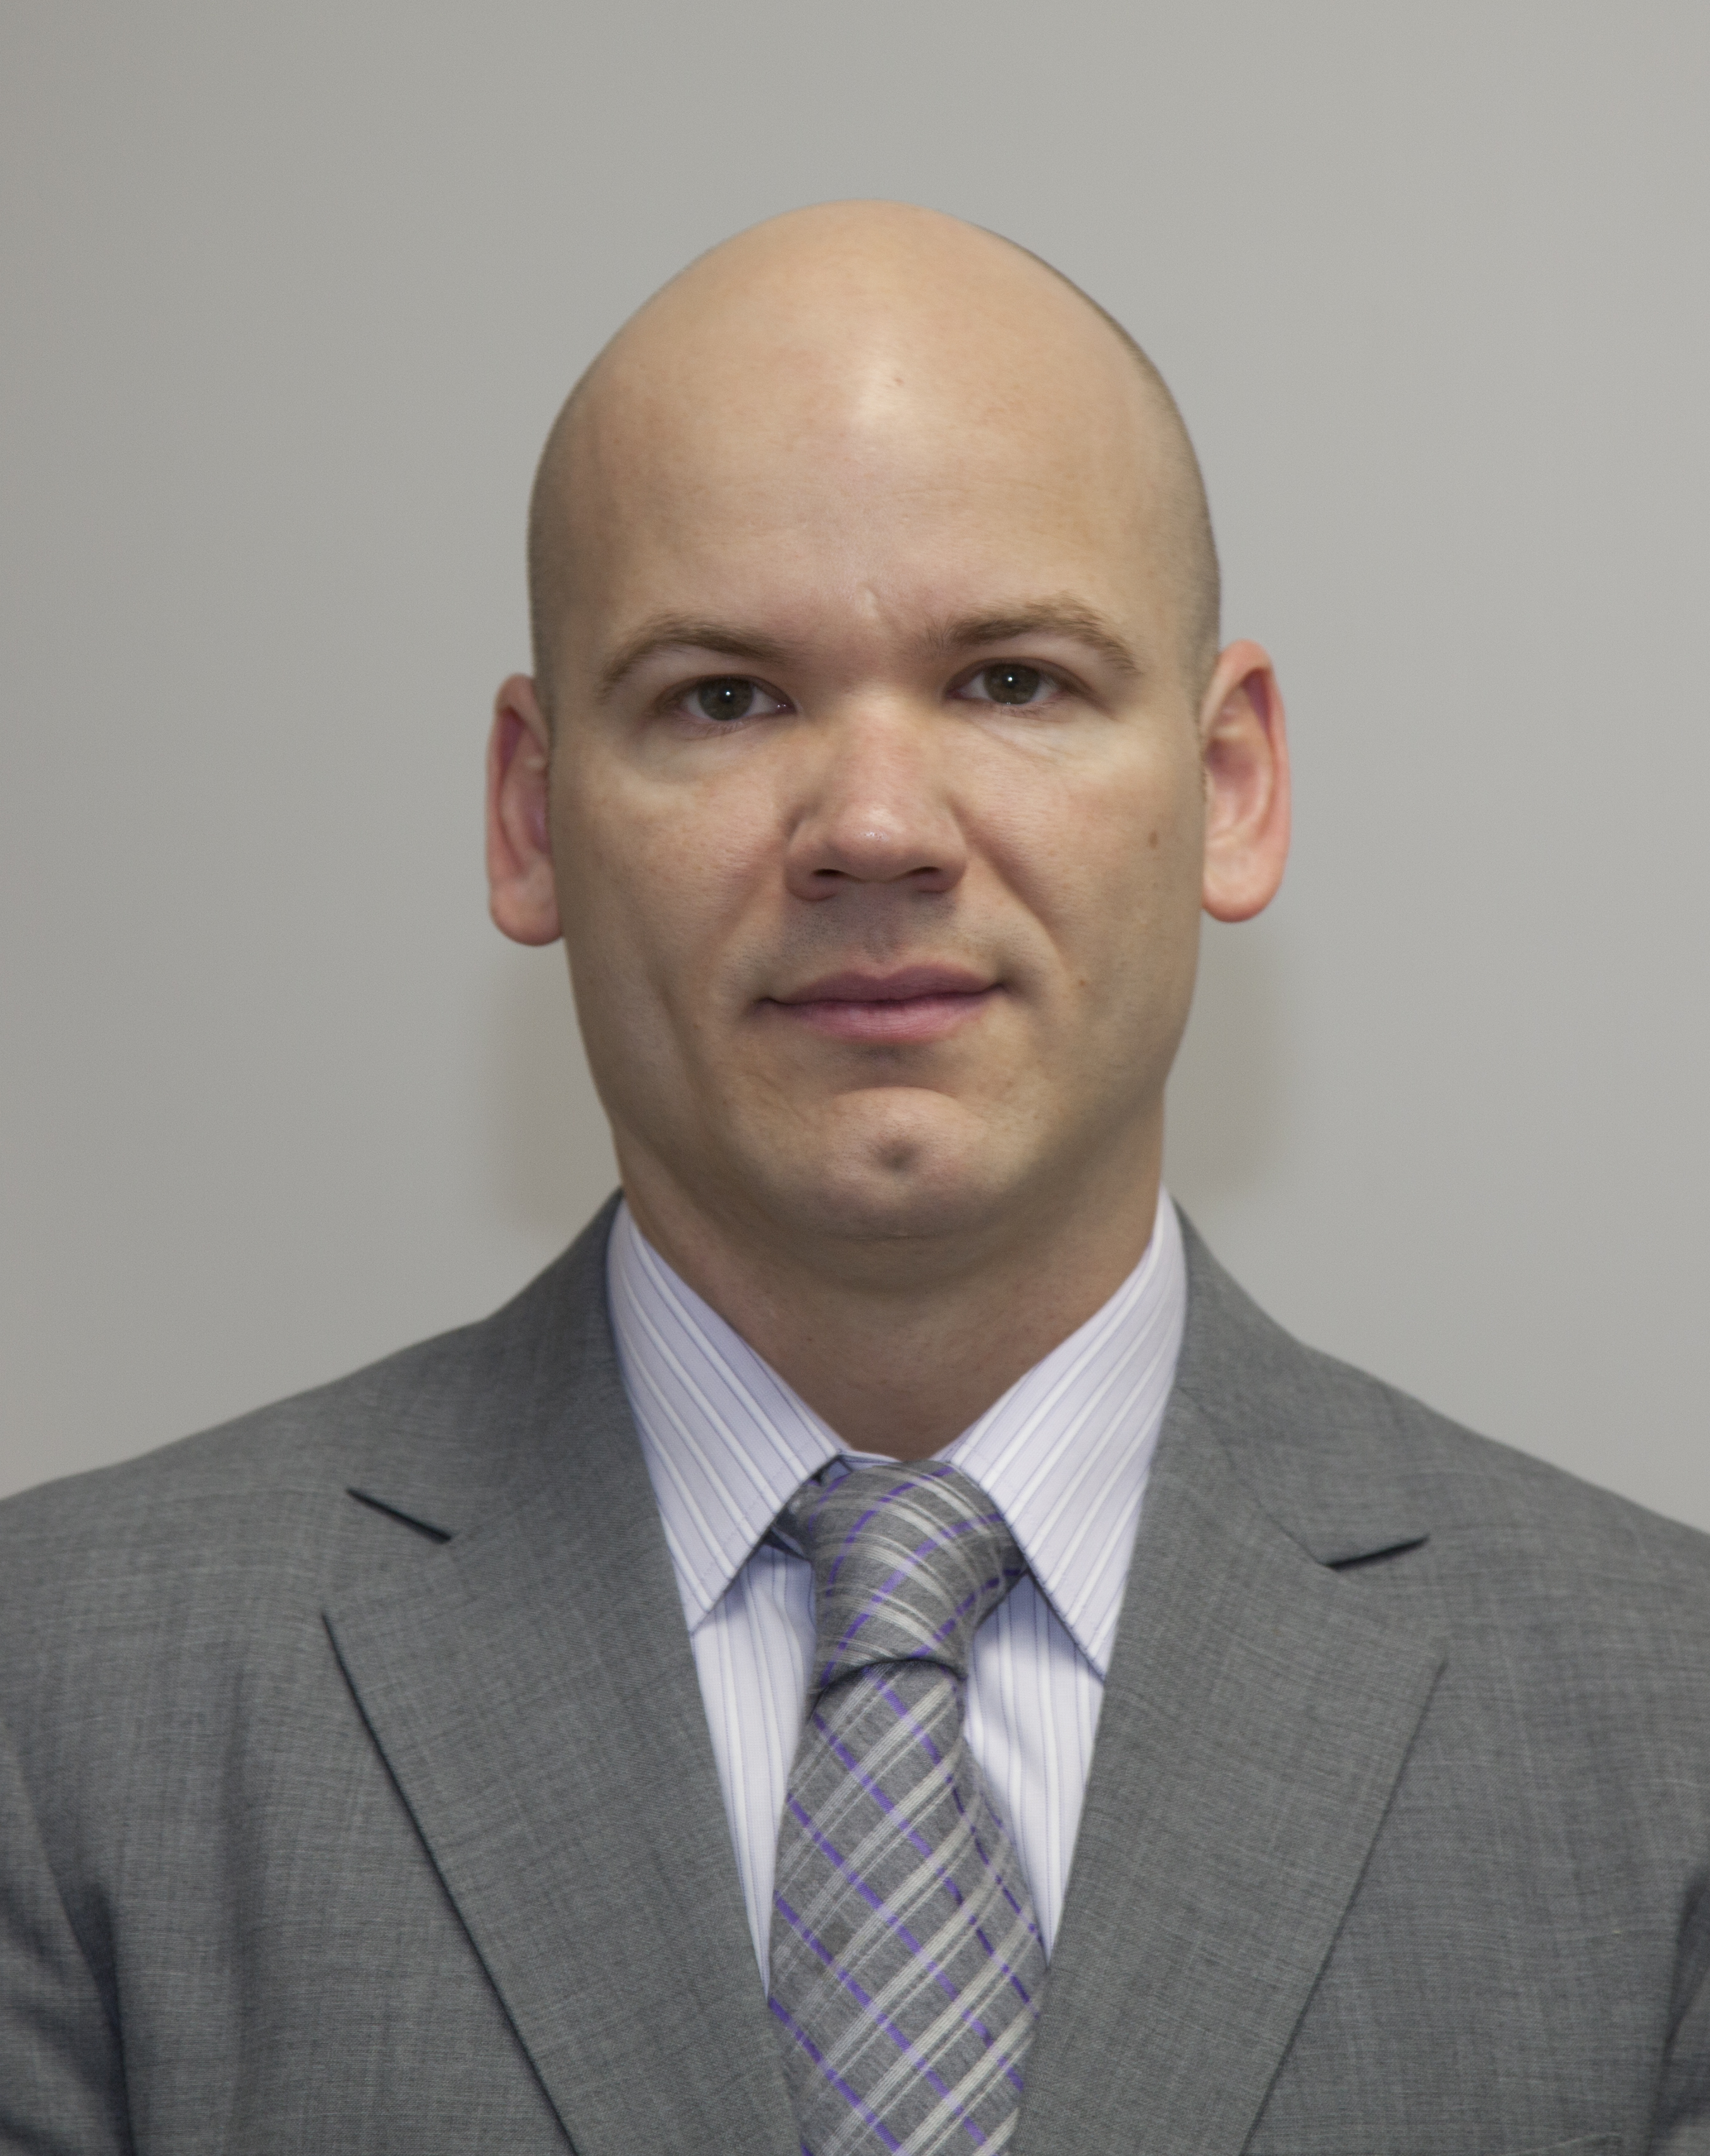 Ben Wulf, newly appointed president and CEO of Port-A-Cool, LLC. Port-A-Cool, LLC is a Texas-based global industry leader in the design and manufacture of portable evaporative cooling units, evaporative cooling media and accessories since 1991. (Photo: Business Wire)